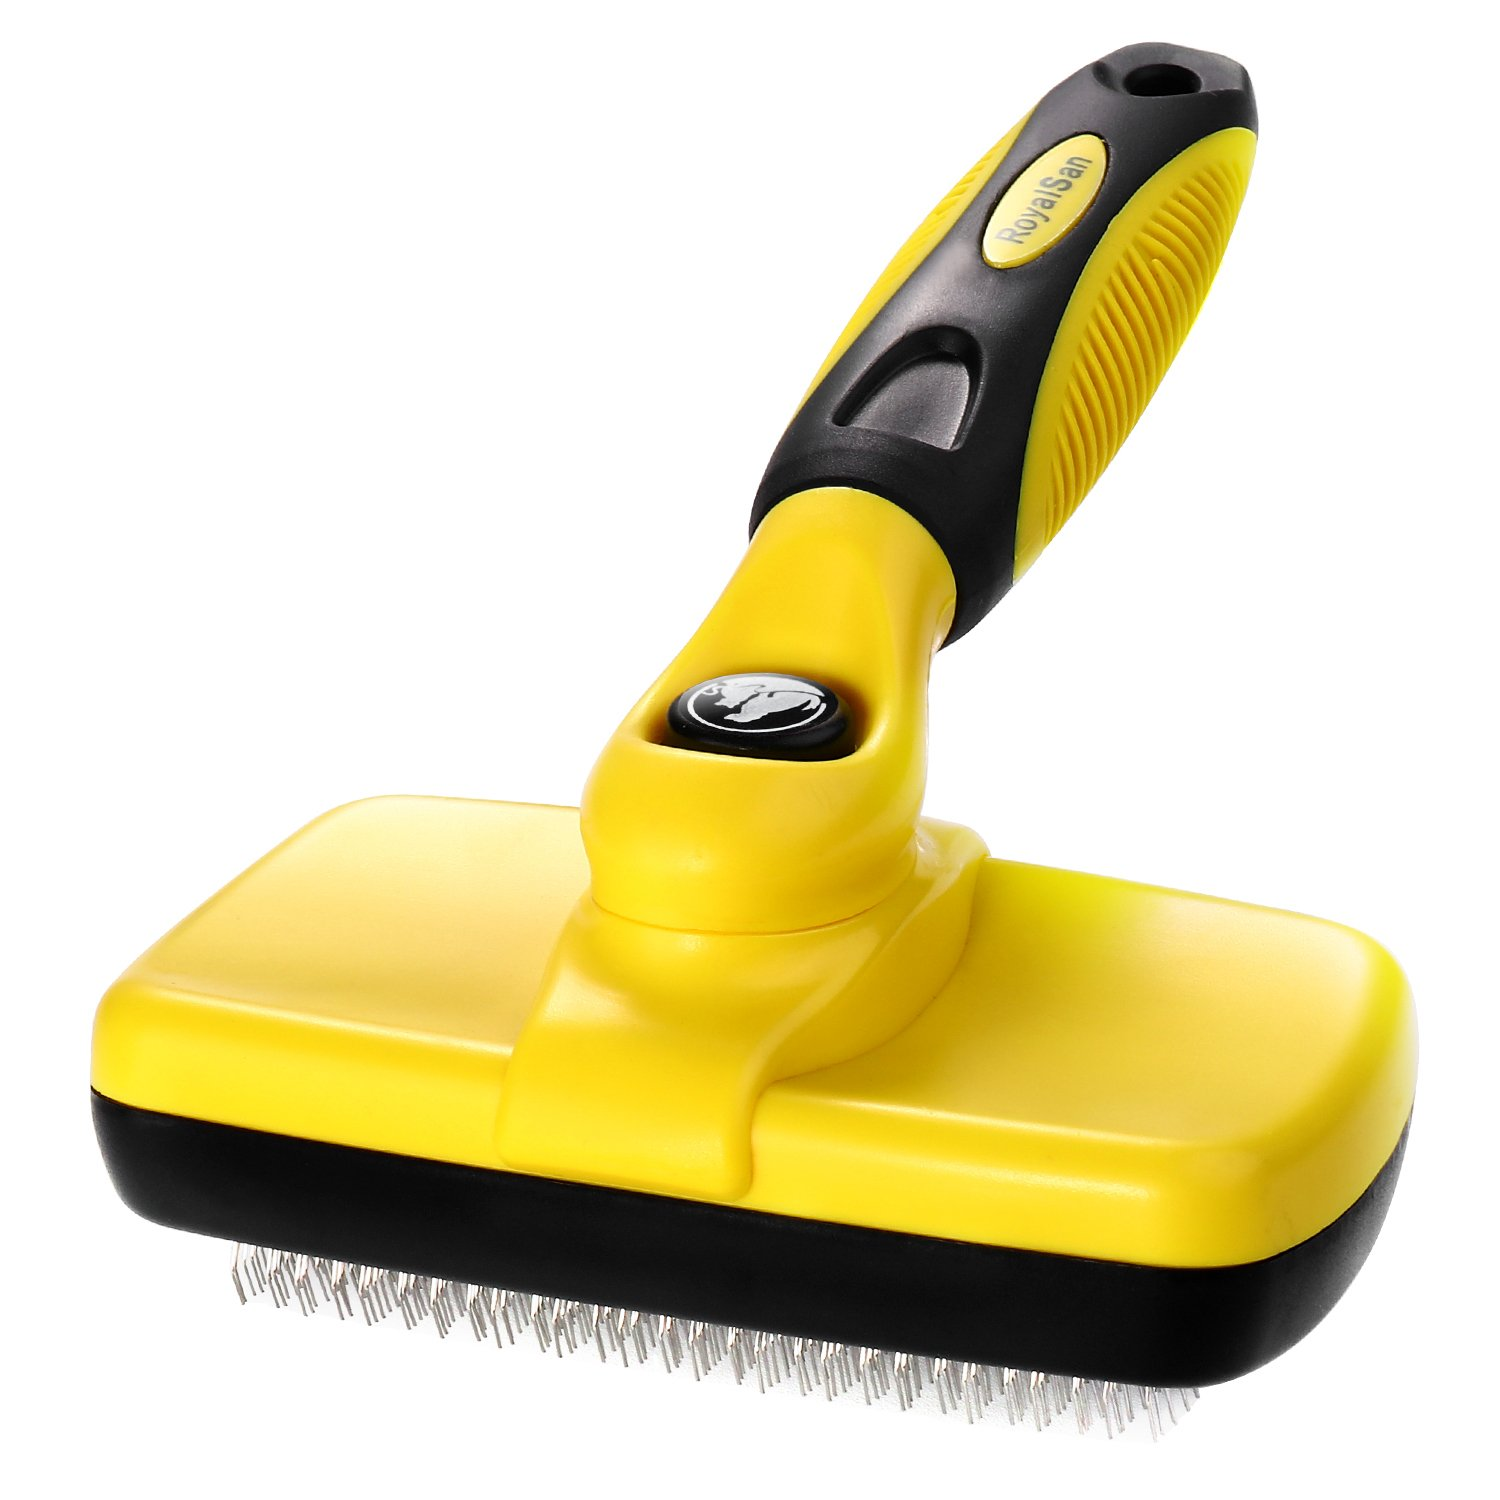 RoyalSan Dog Comb Self Cleaning Slicker Brush-Pet Animal Grooming Tools Brushes for Dogs,Perfect Grooms and Massages for Your Pet Grooming Accessories Yellow Color